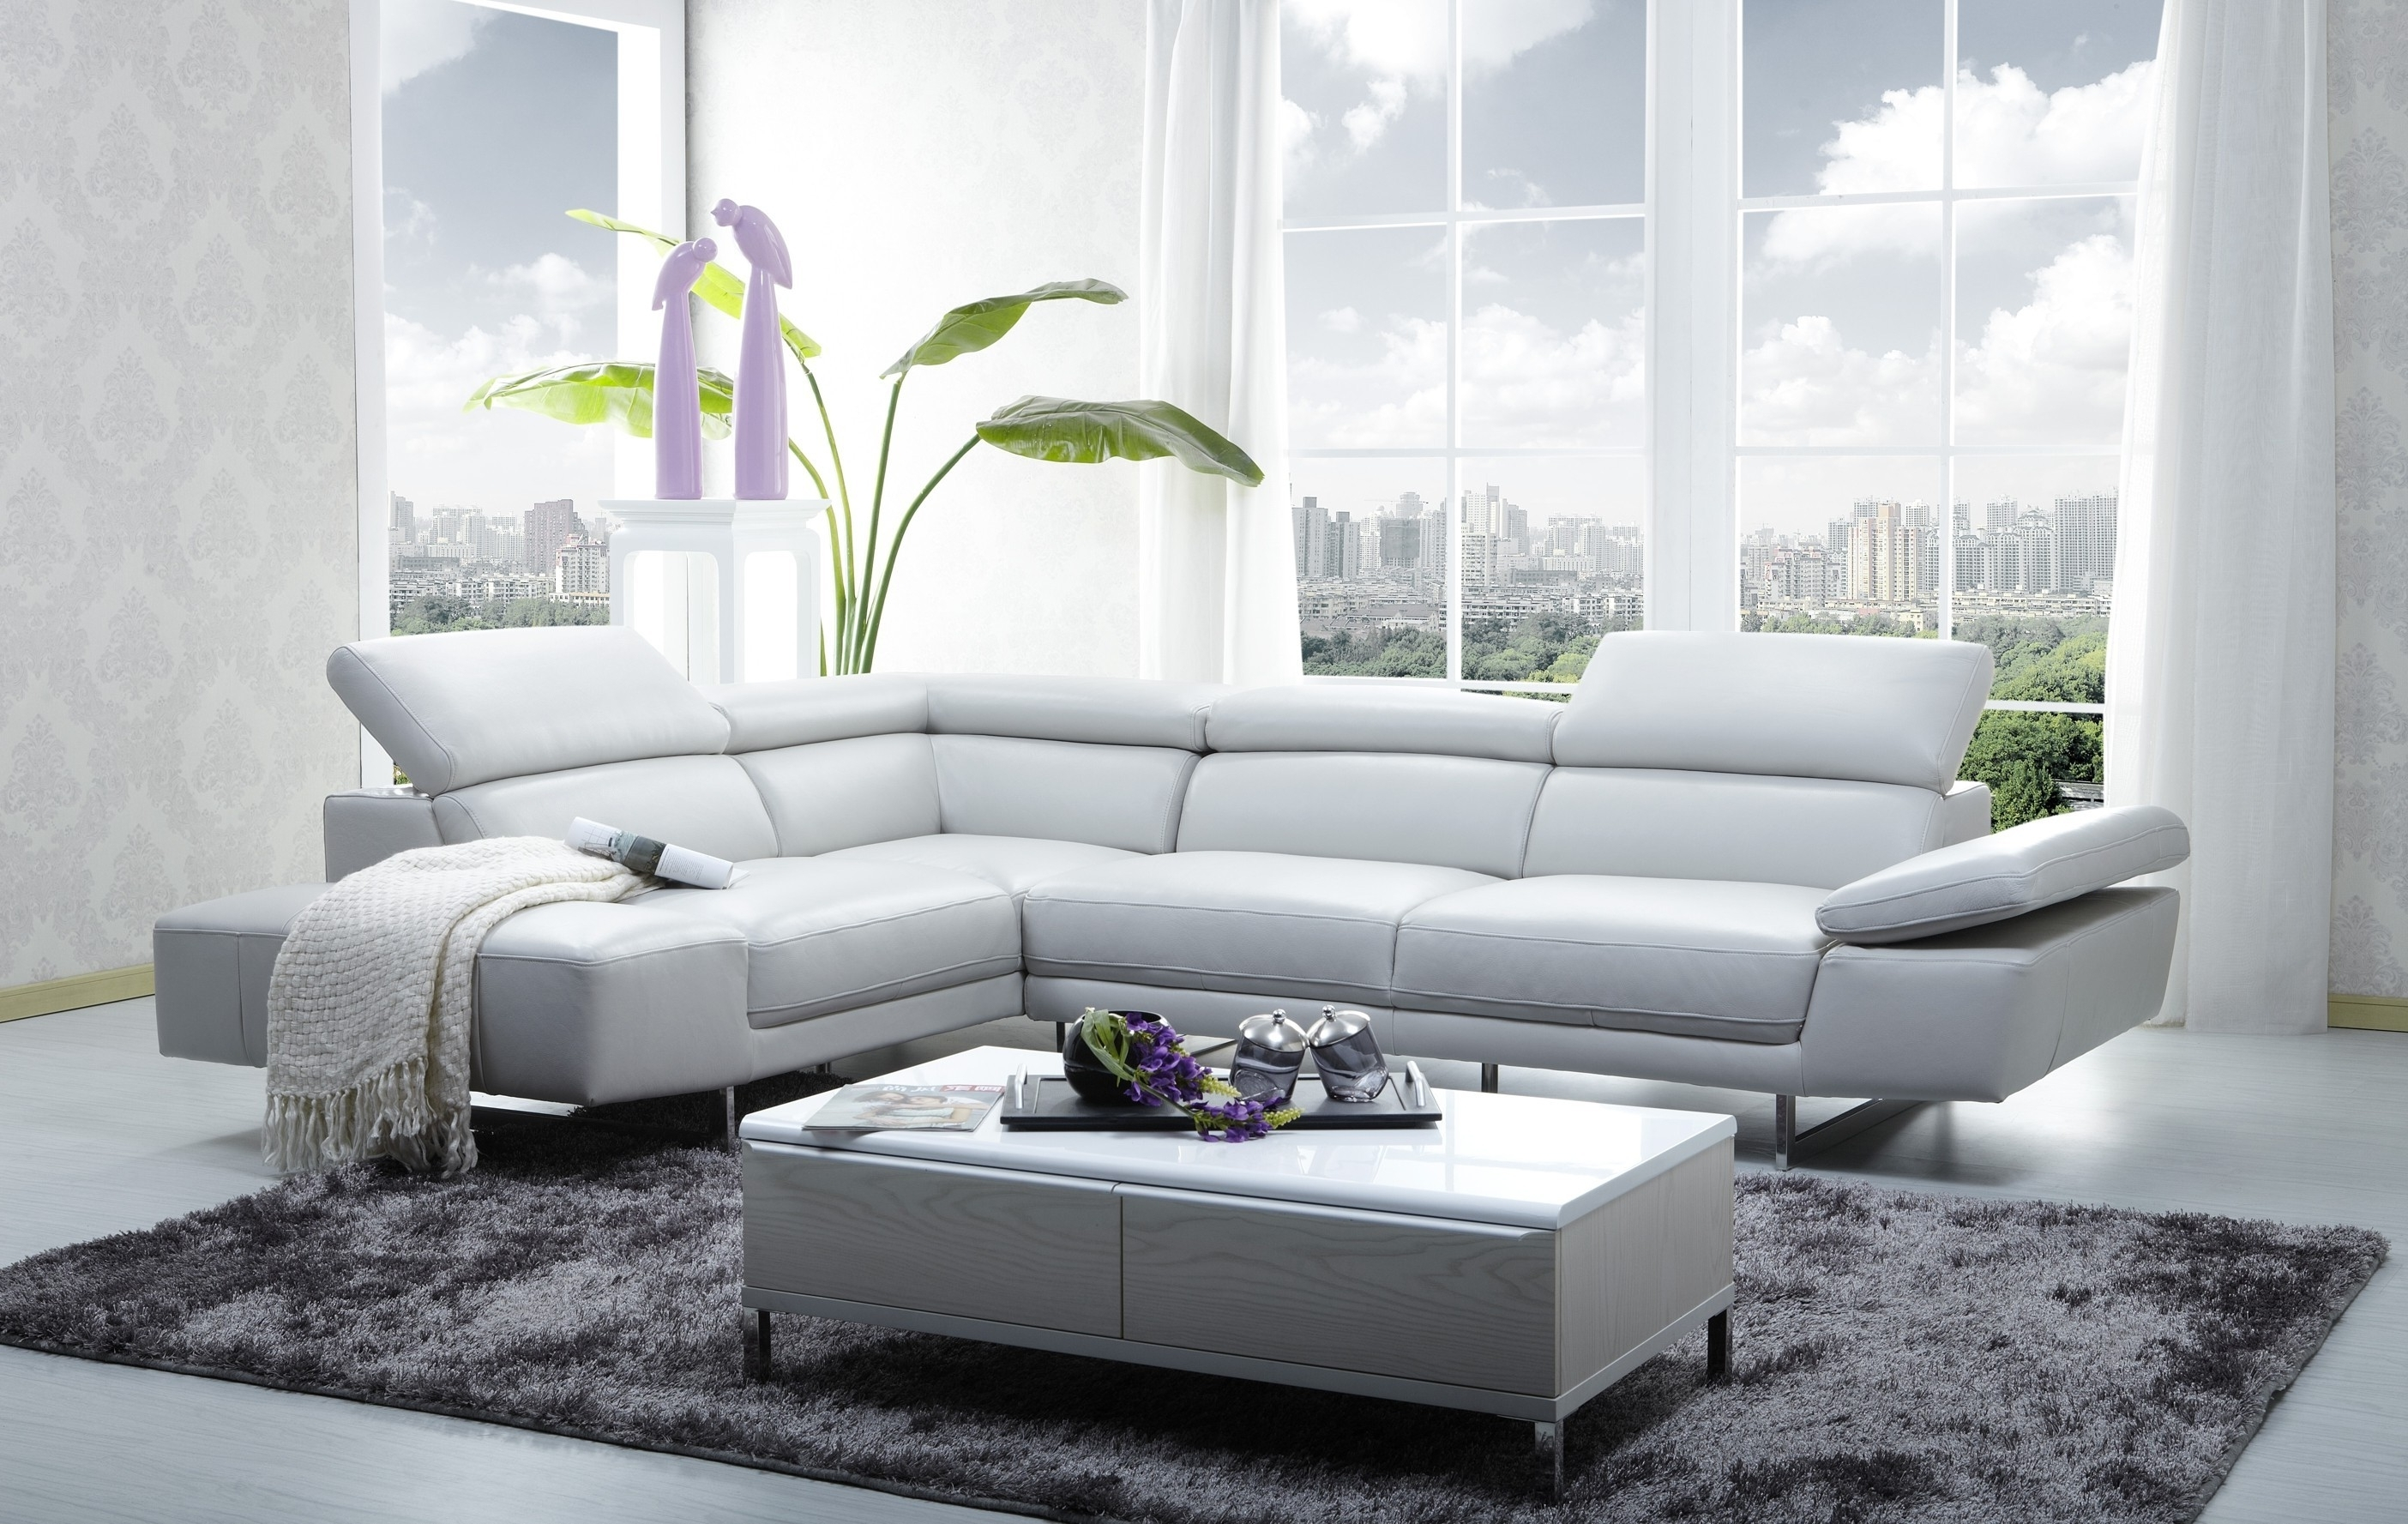 Preferred Kijiji Montreal Sectional Sofas Regarding Furniture : Paris 1 White Tufted Leather Sectional Sofa Tufted (View 18 of 20)